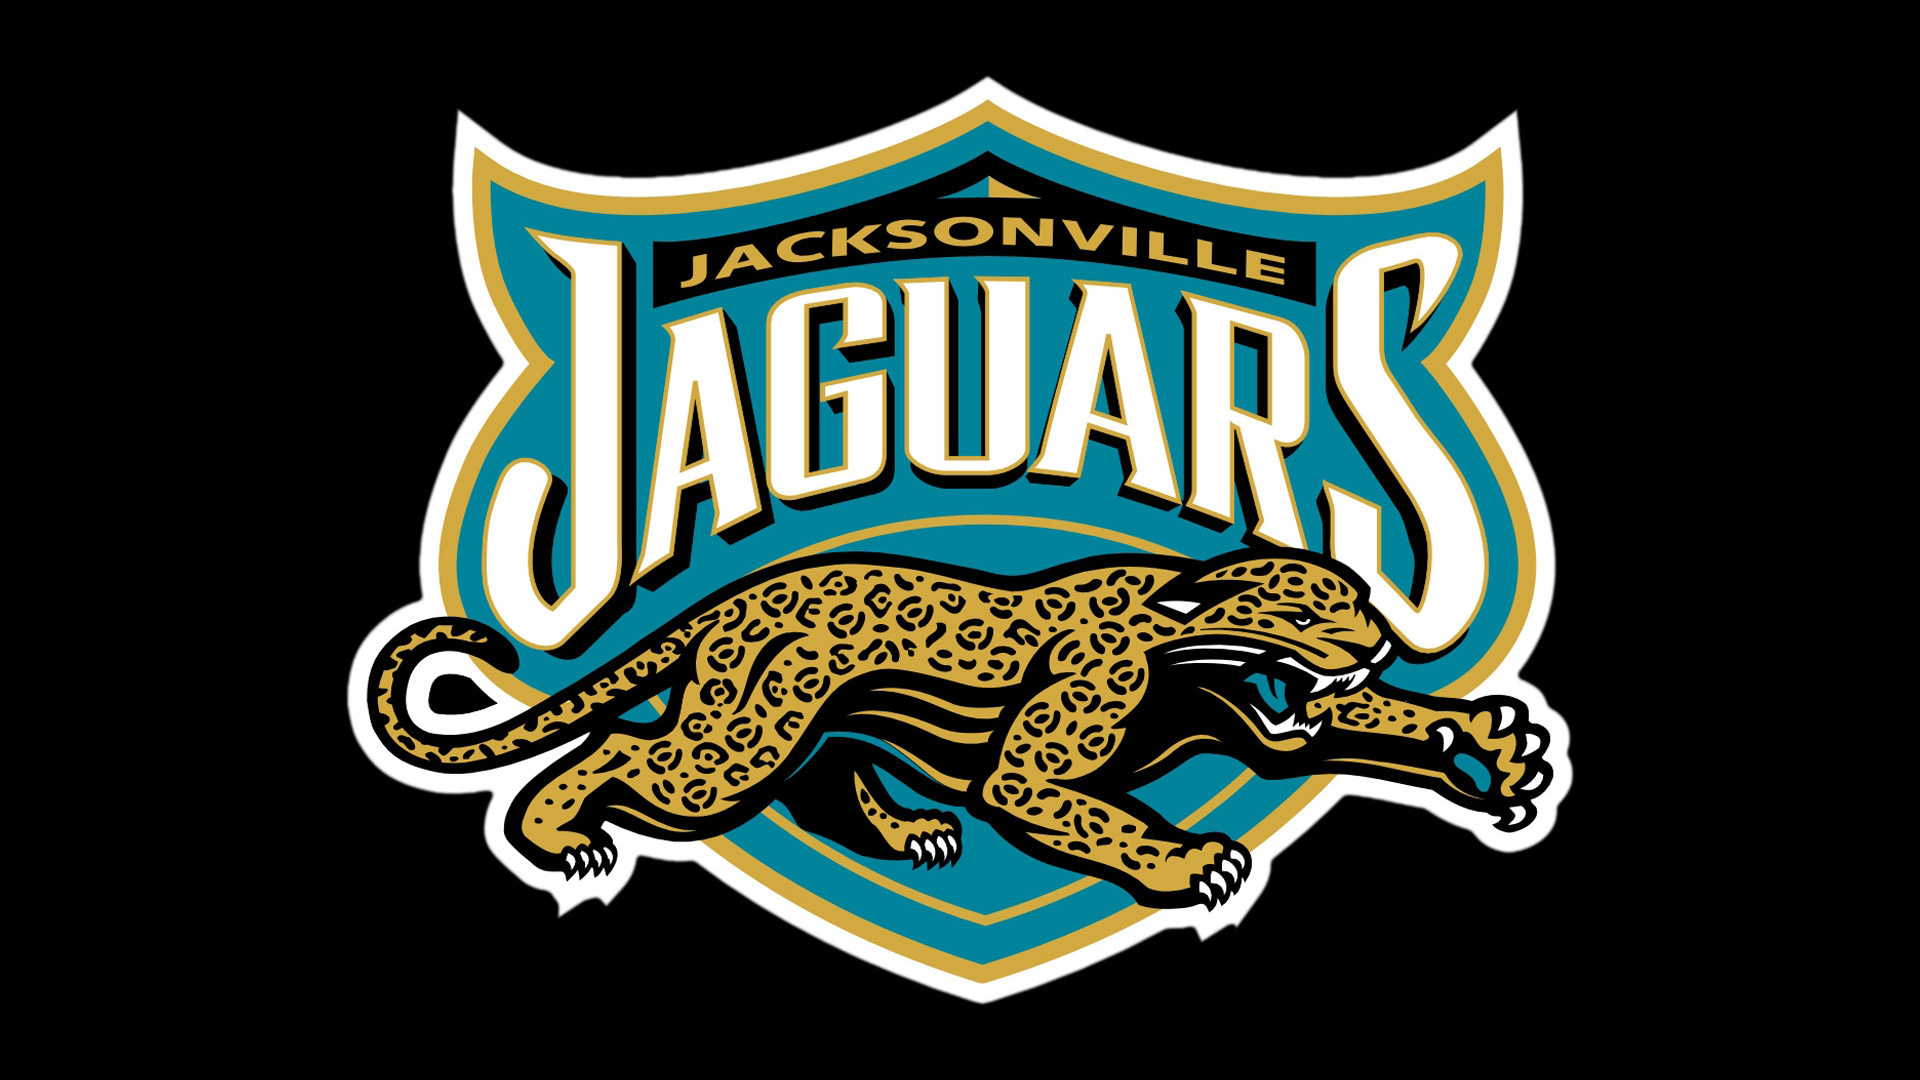 Jacksonville Jaguars HD Wallpaper Download HD Wallpapers 1920x1080